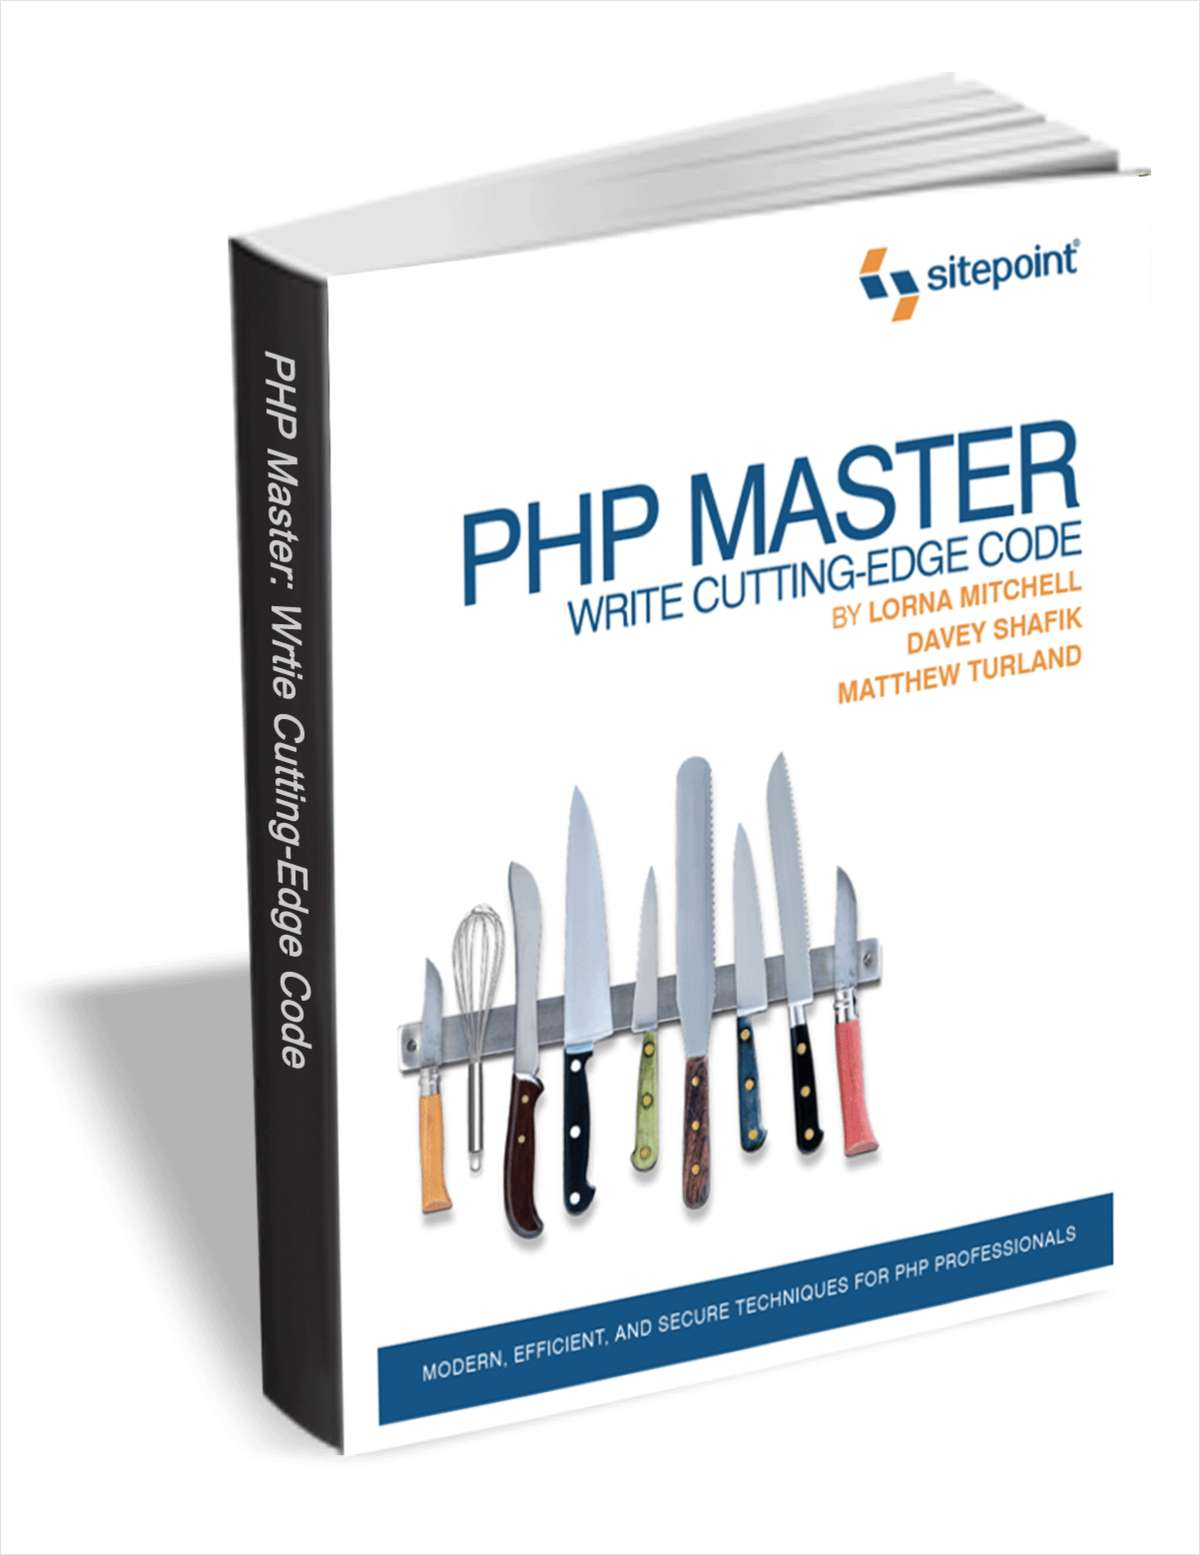 PHP Master: Write Cutting-edge Code (Free eBook!) A $30 Value